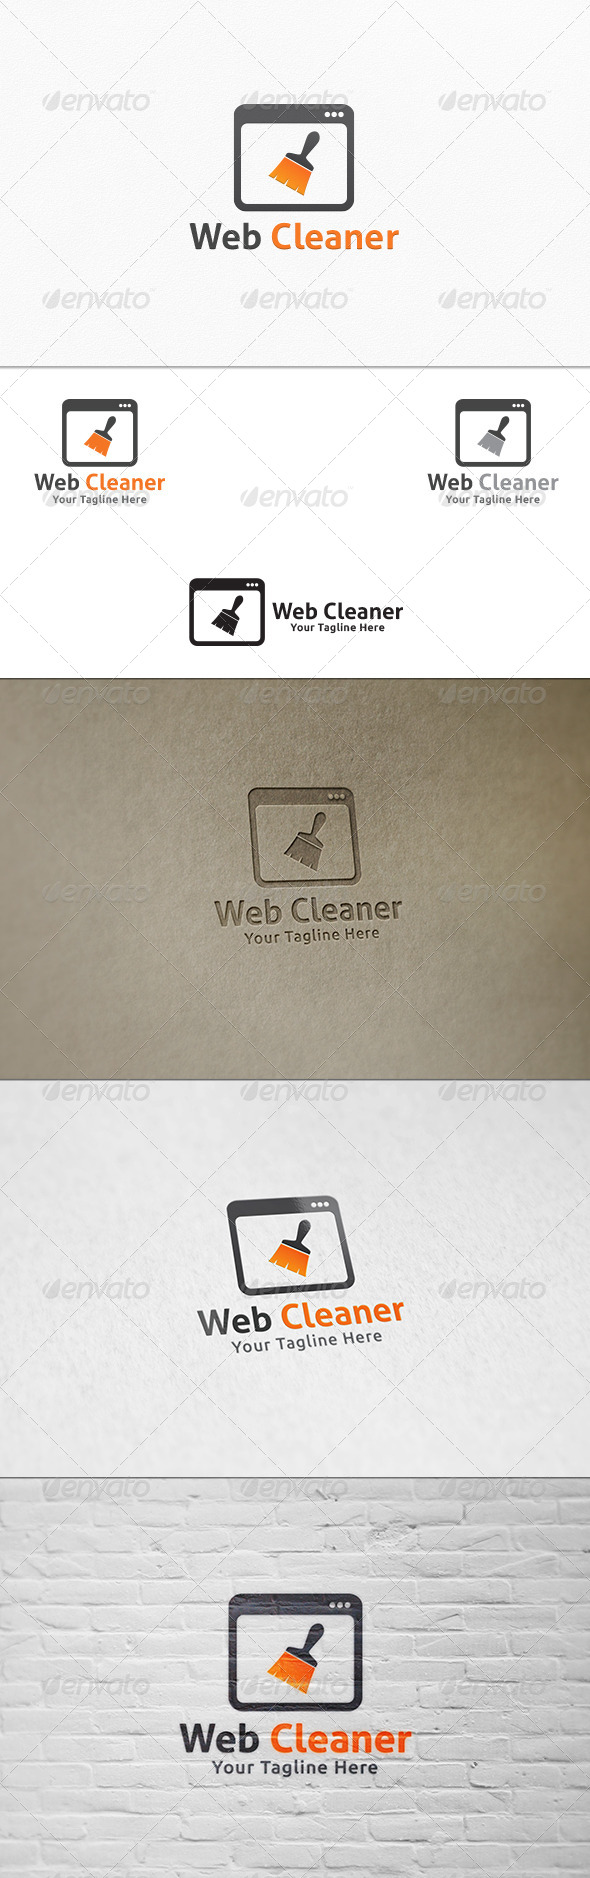 GraphicRiver Web Cleaner Logo Template 7483959